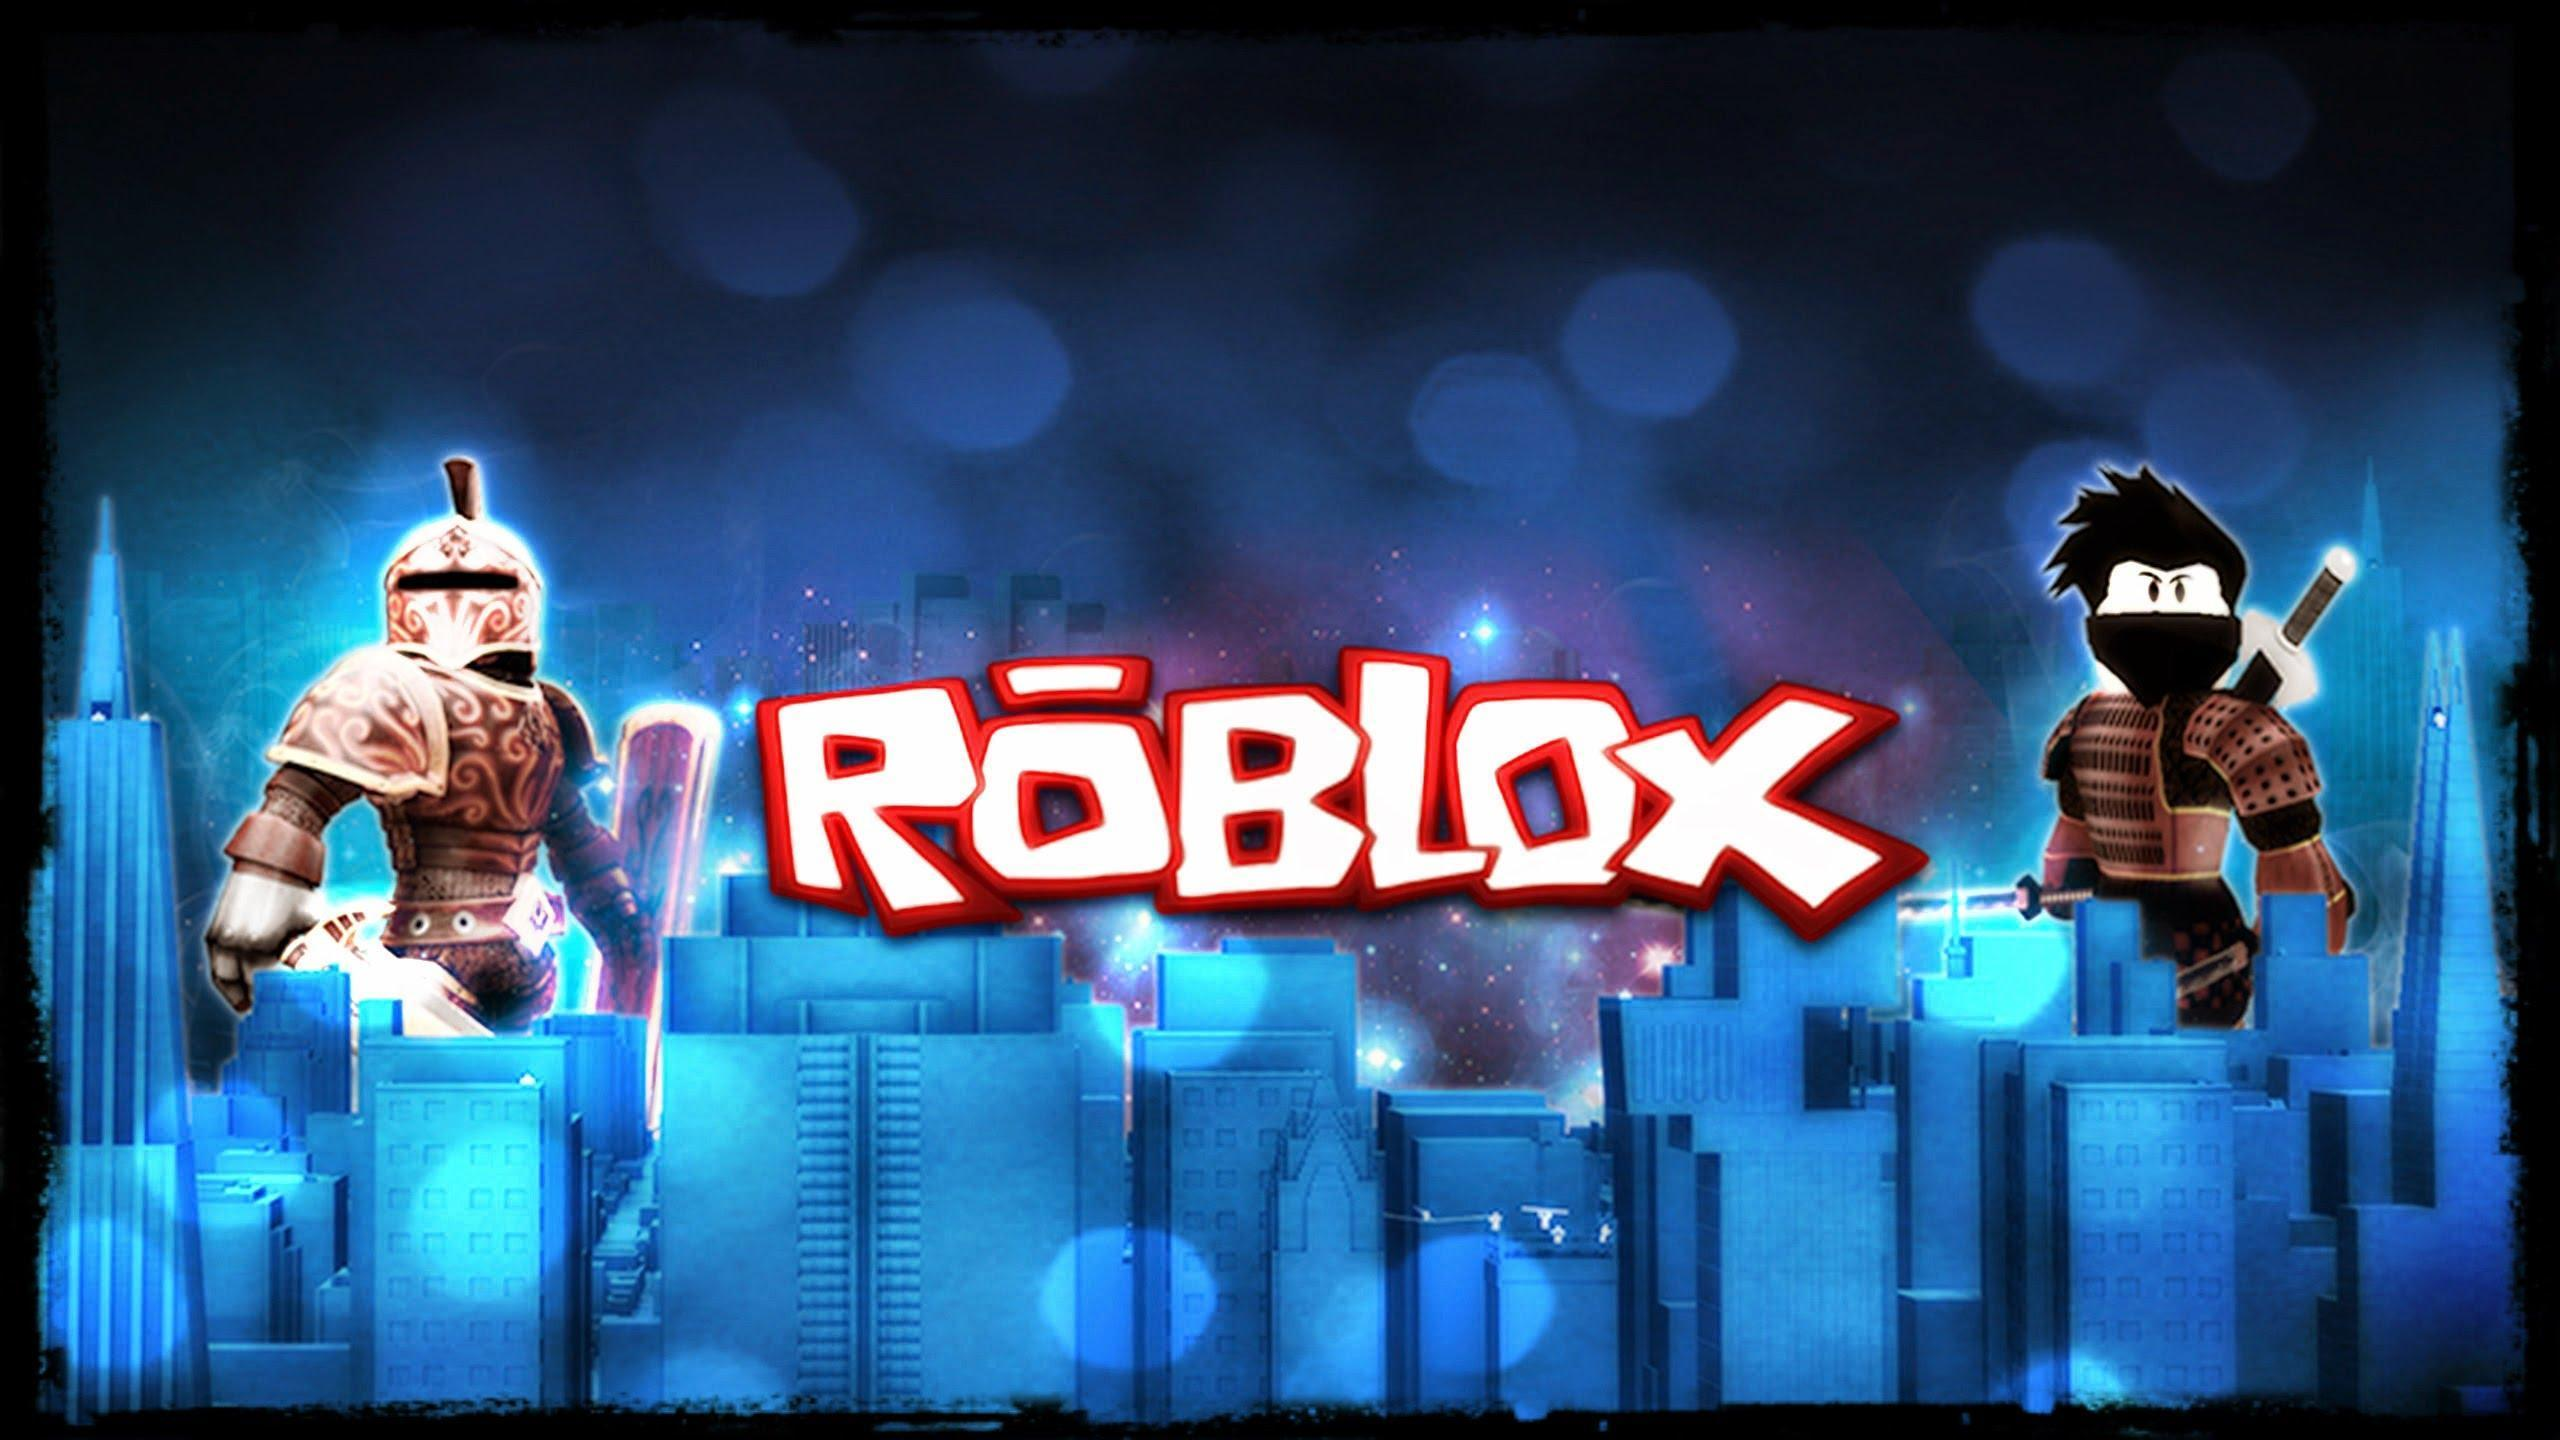 Para Youtube Imagenes De Roblox Logo Wallpapers Rblx Rblx Game Free Wallpapers For Android Apk Download